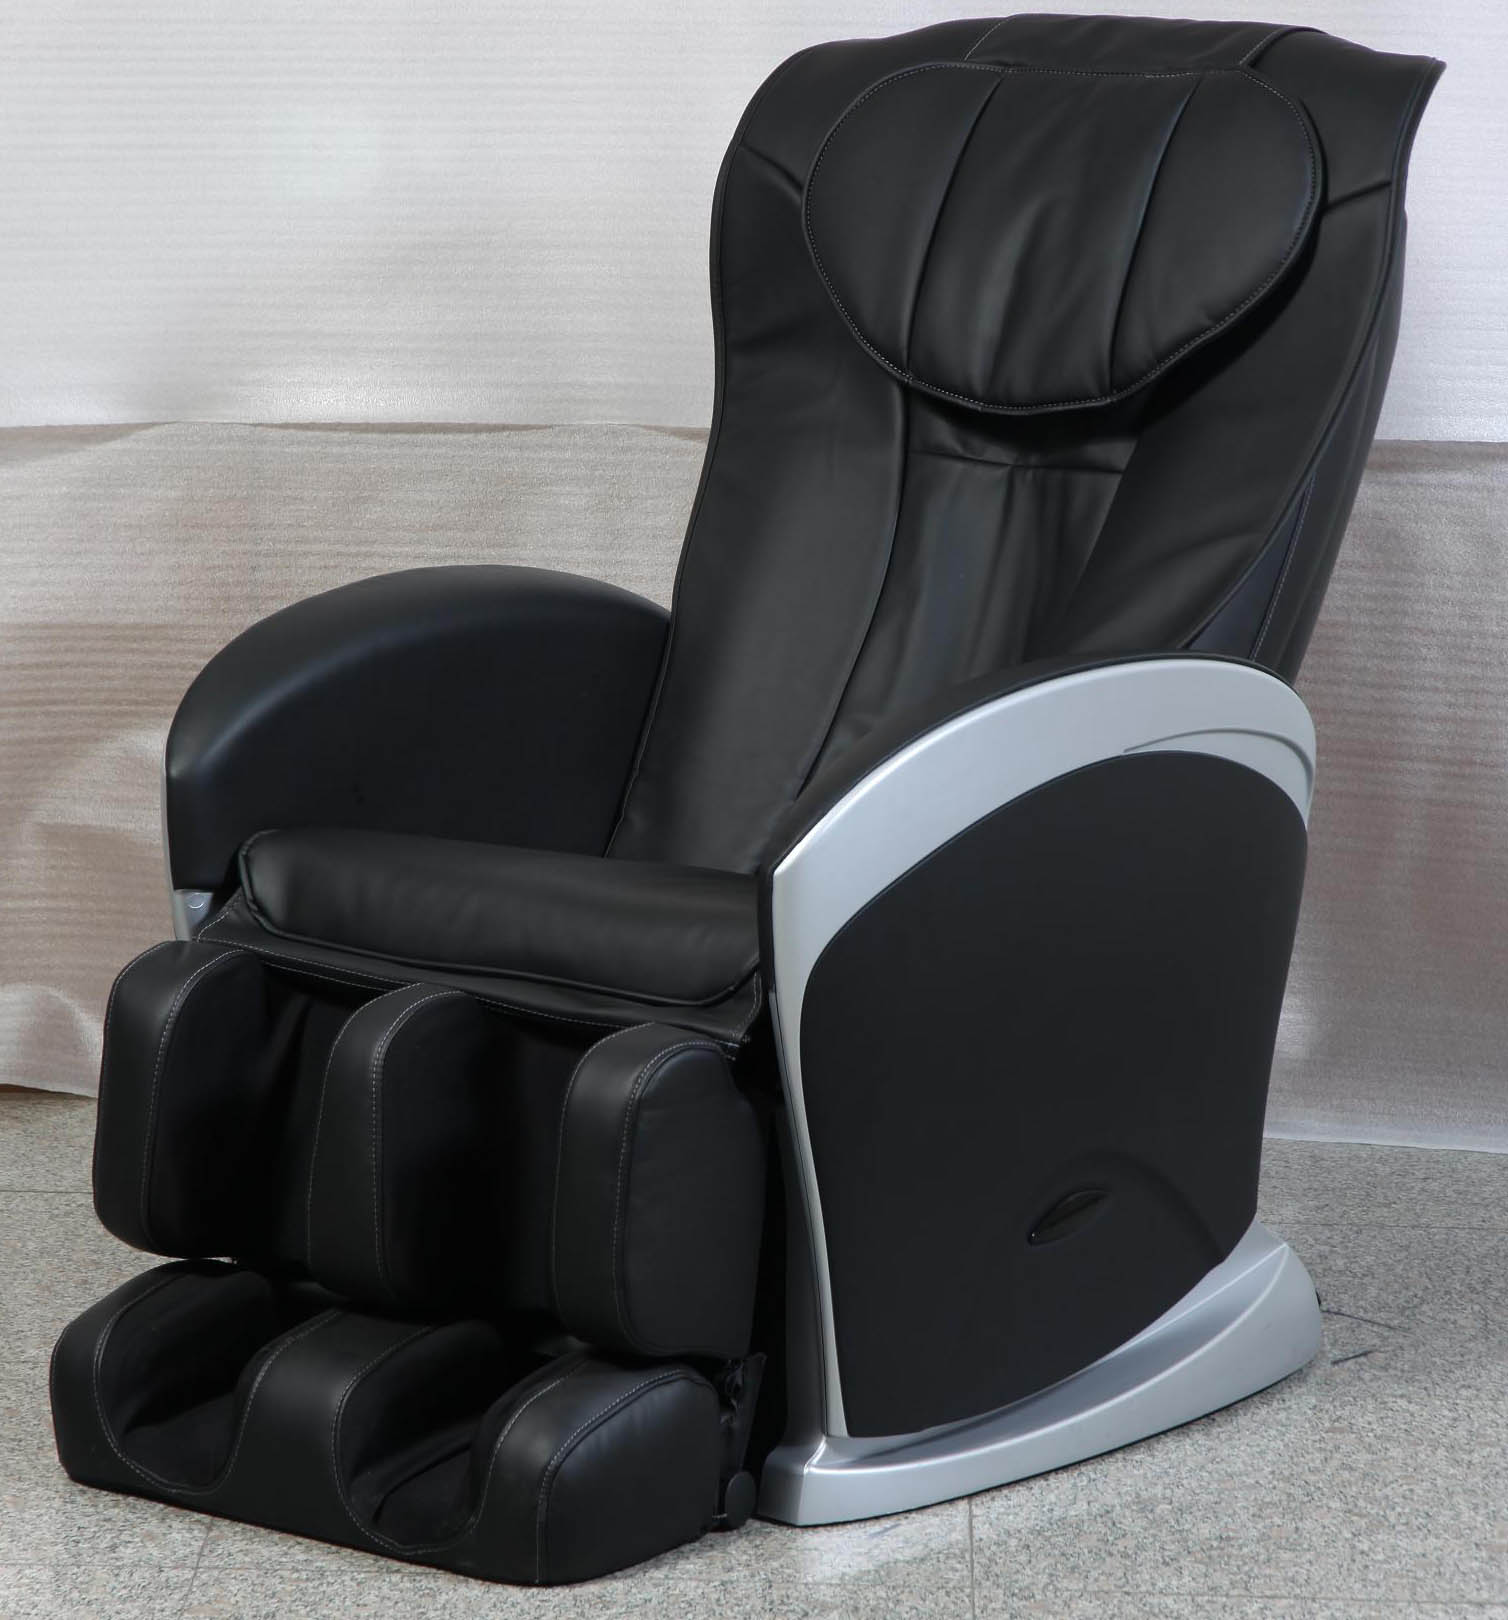 Bodycare Massage Chair Bodycare Massage Chair Suppliers and